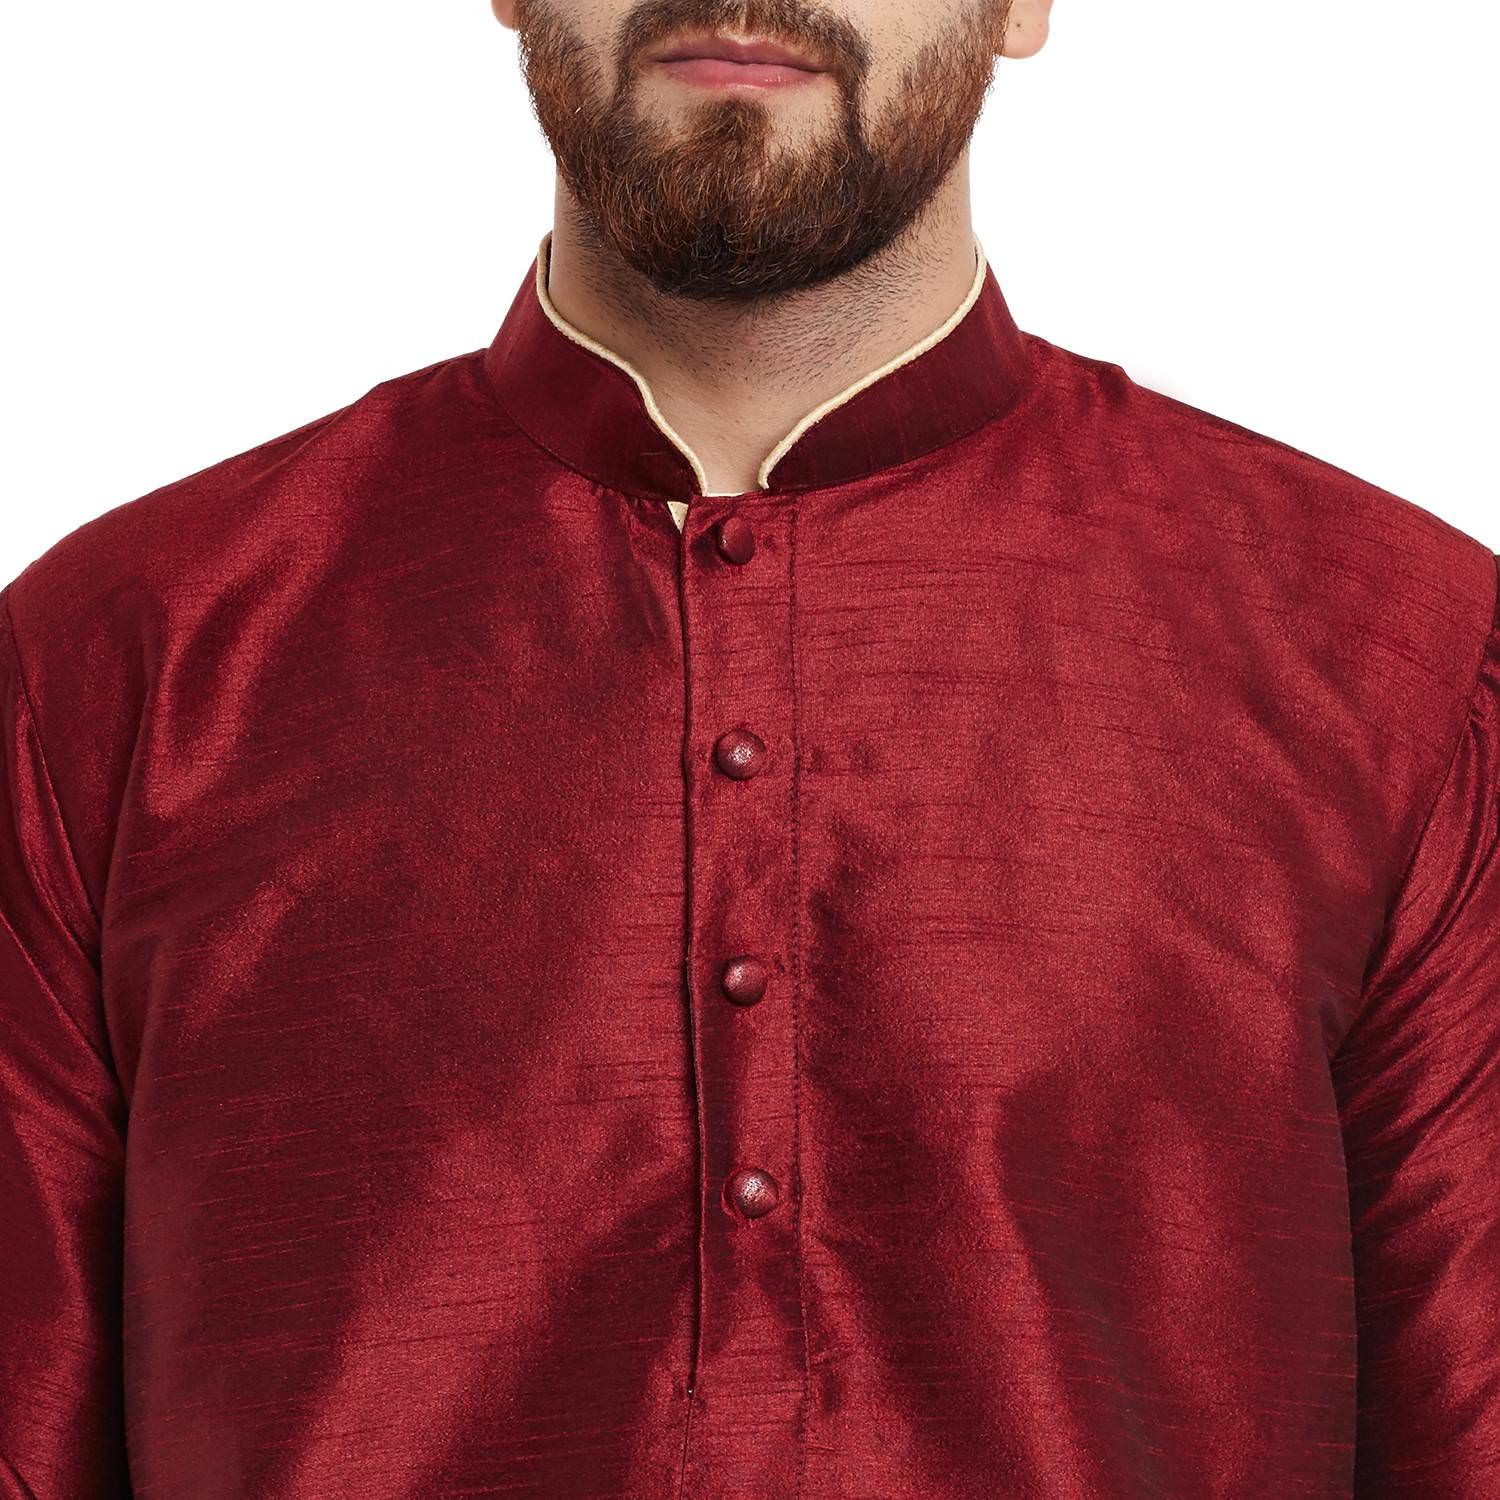 Mens Dupion Silk Maroon Solid Designer Kurta Churidaar Set Long Sleeve Ban collar Regular Fit